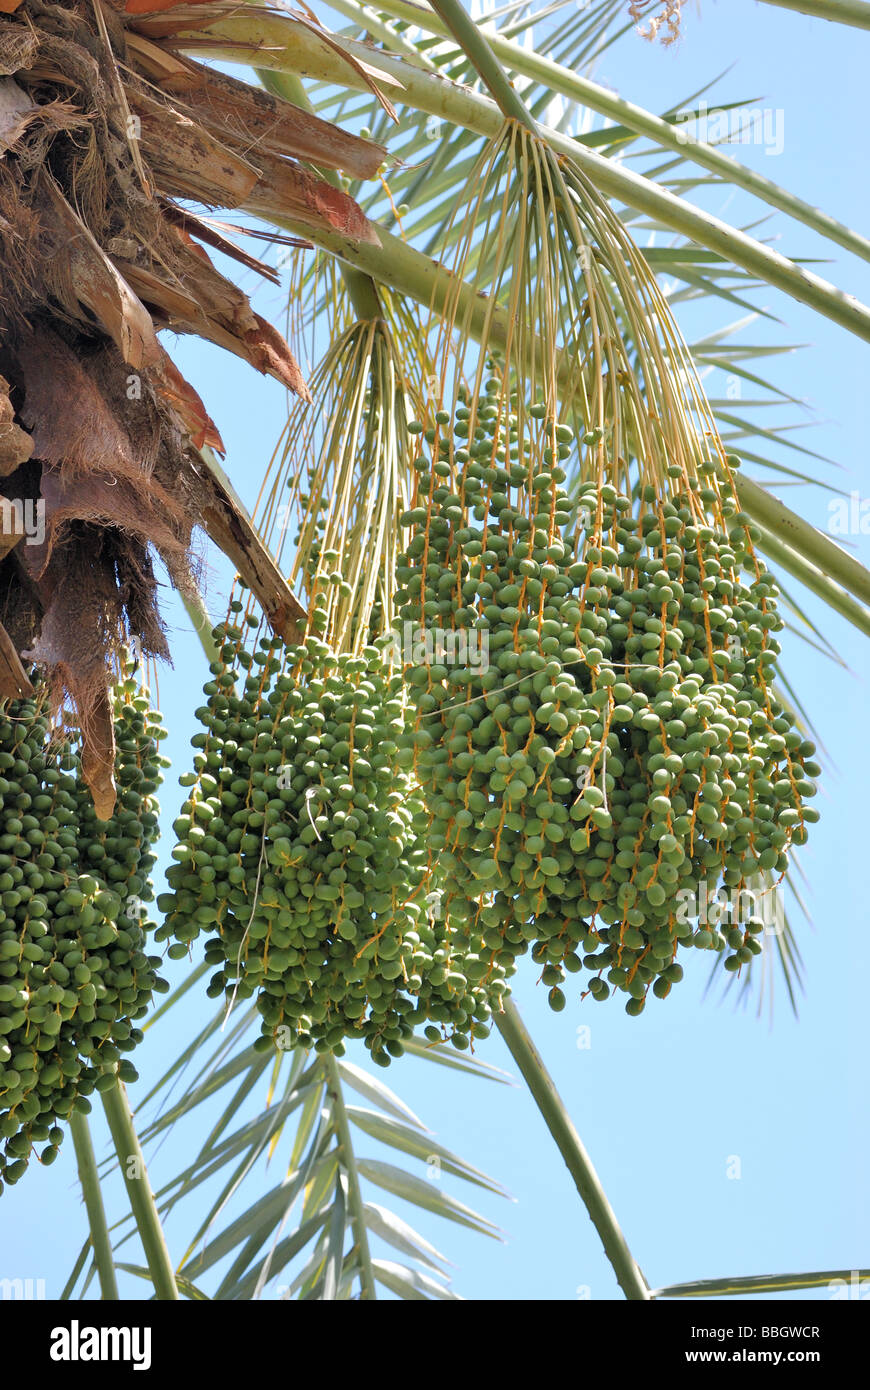 Dates growing at the Palm Arboretum Oasis date palm tree farm Thermal CA Stock Photo